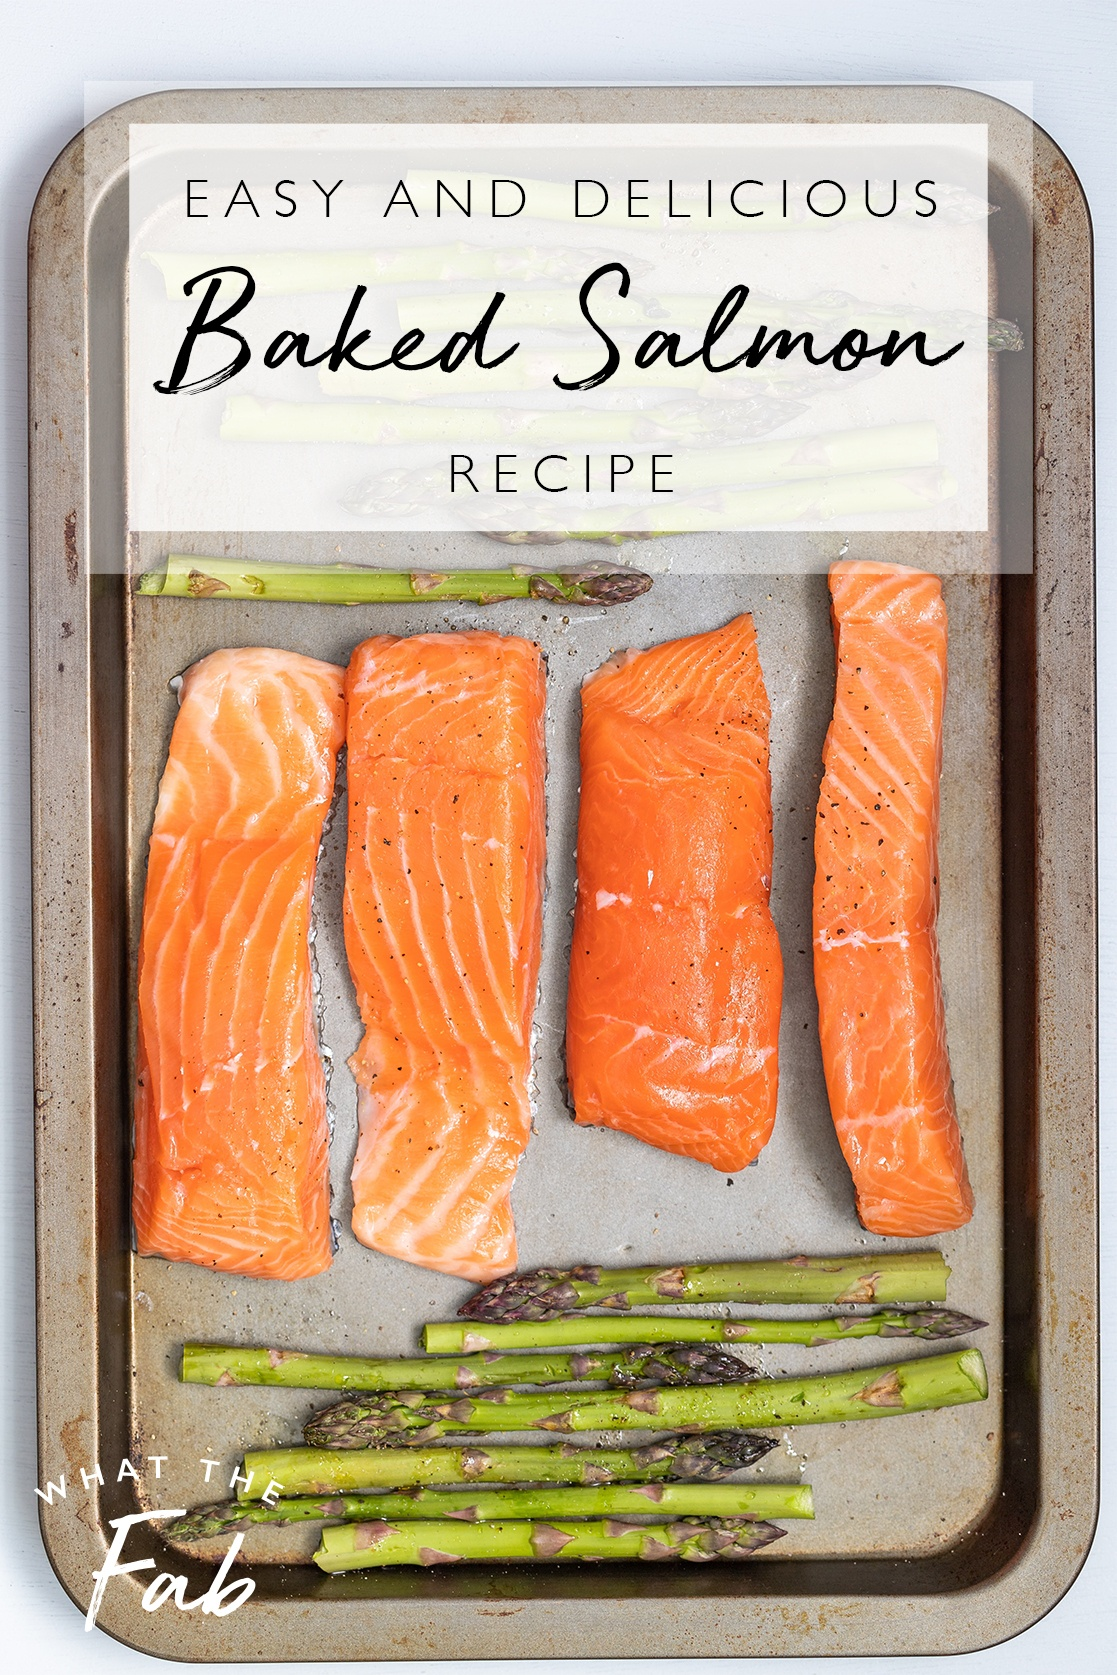 Easy baked salmon recipe, by lifestyle blogger What The Fab